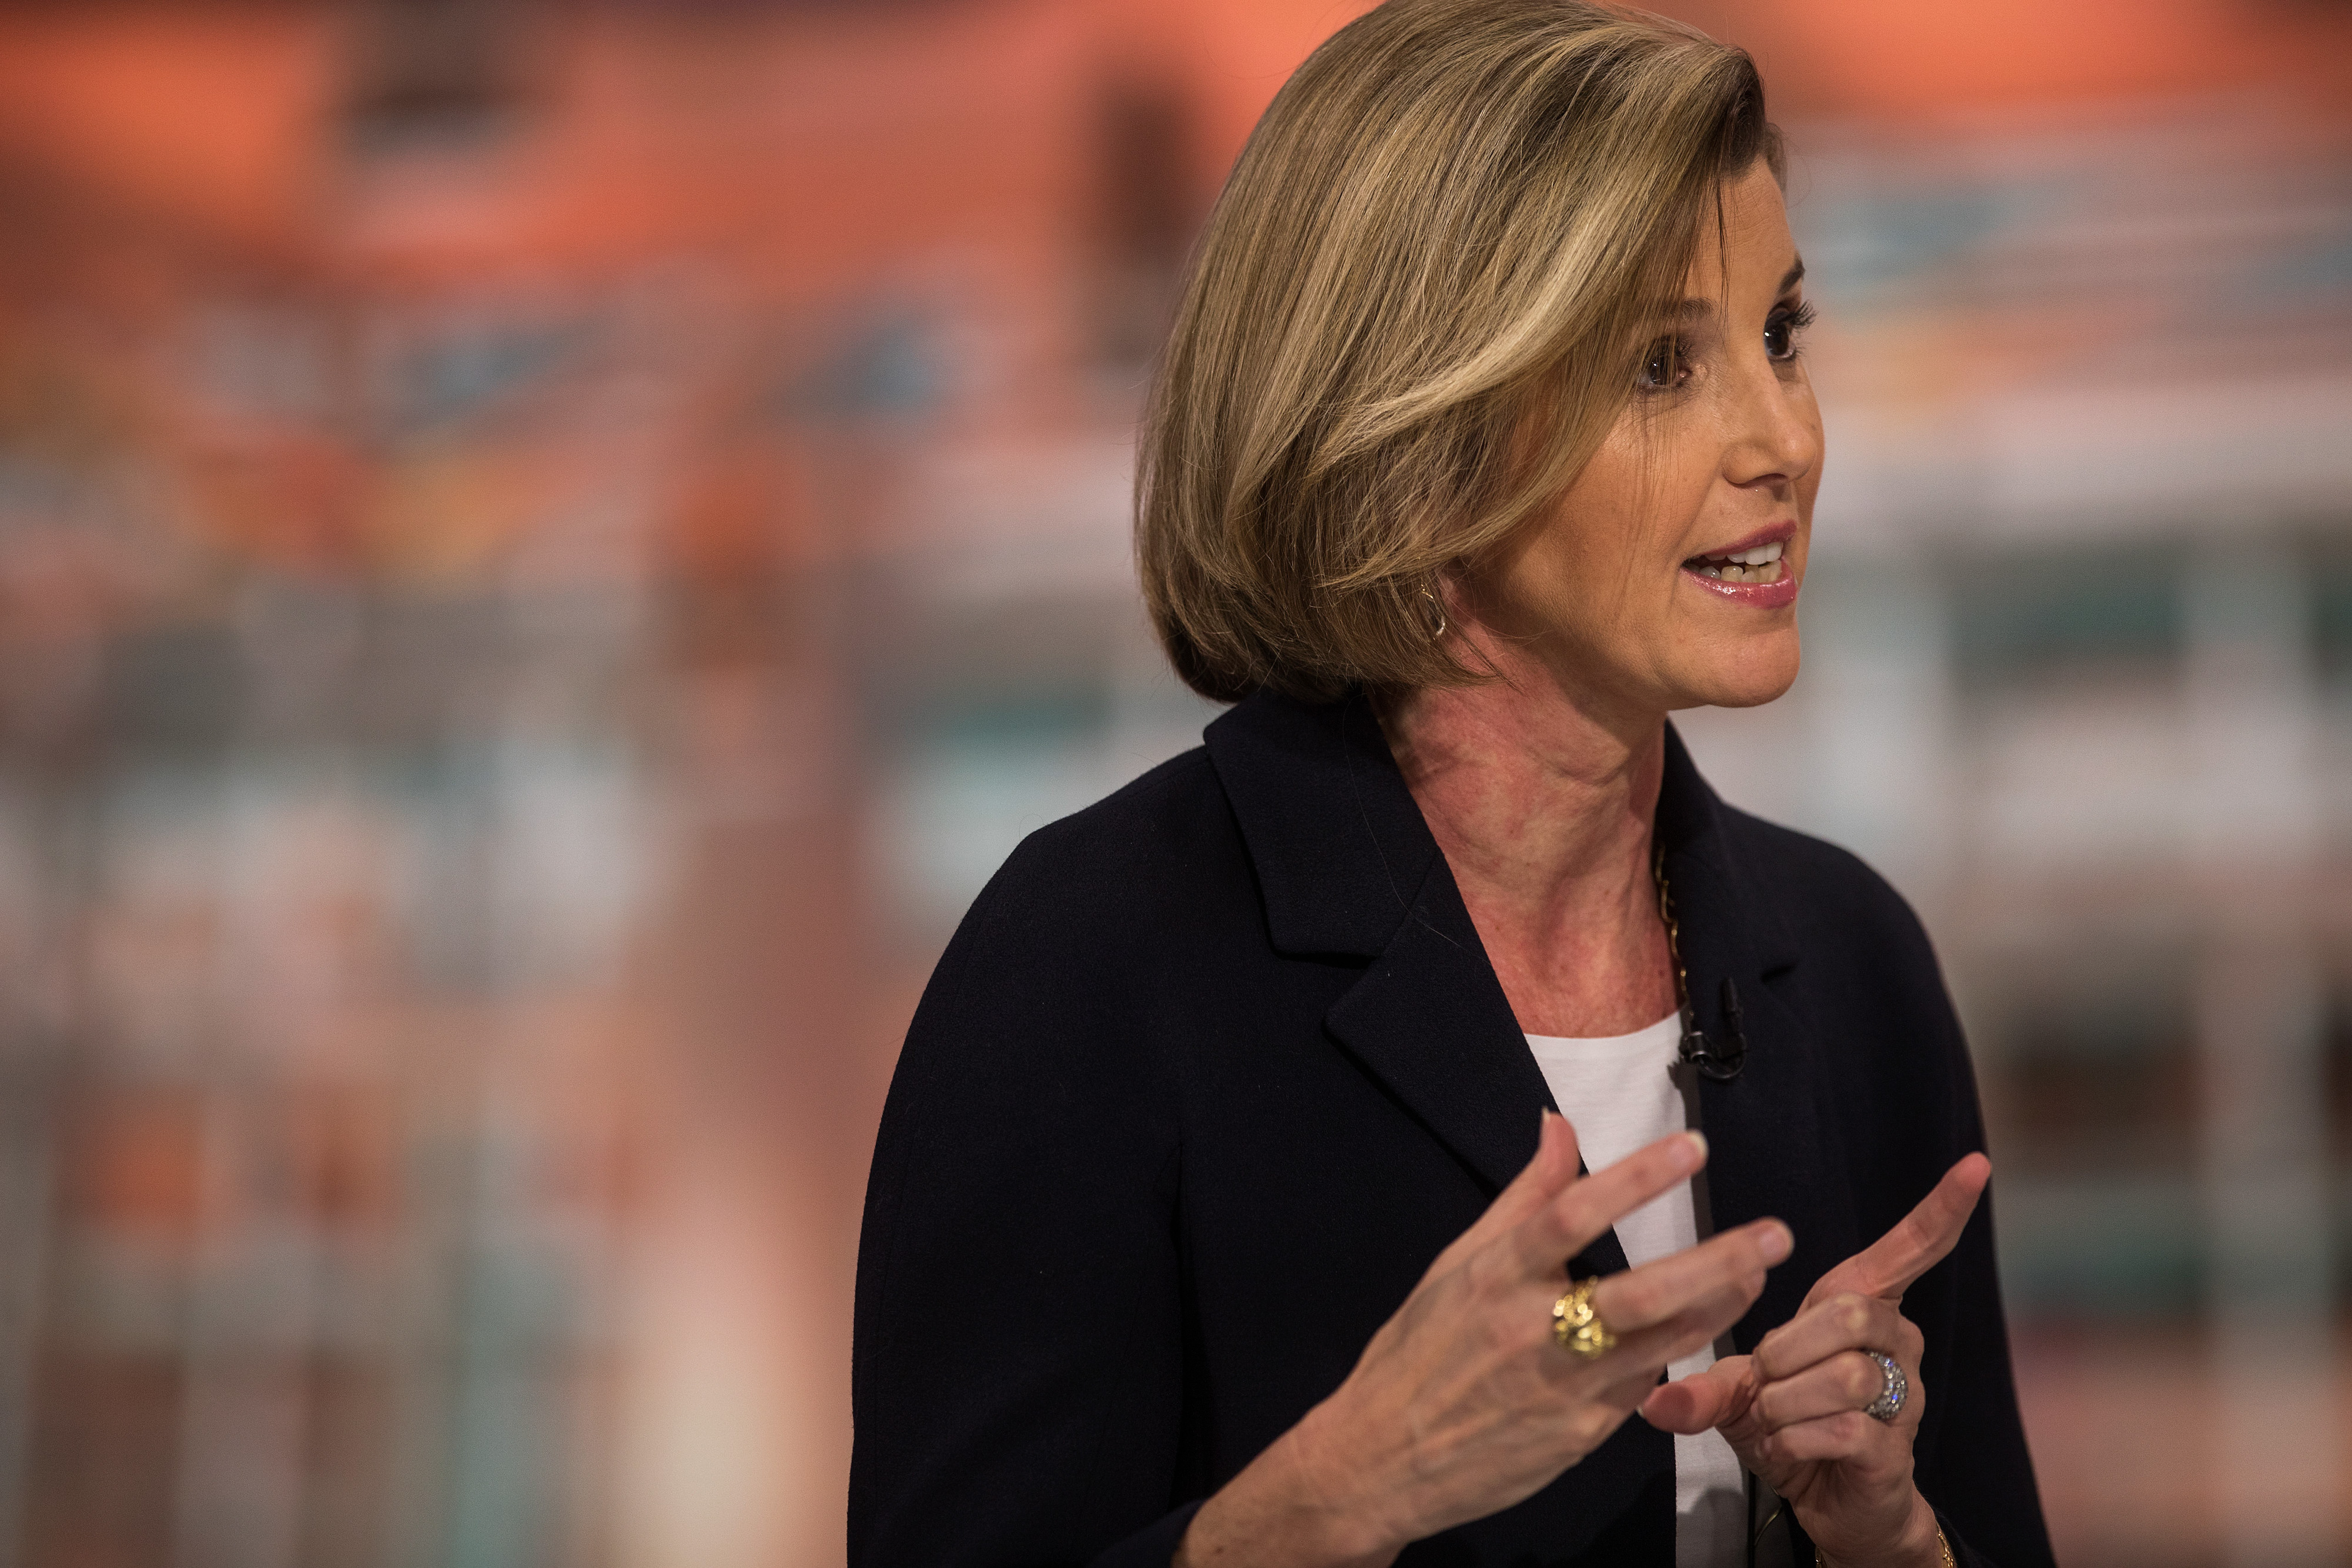 Ellevate Financial Inc. Chief Executive Officer Sallie Krawcheck Interview